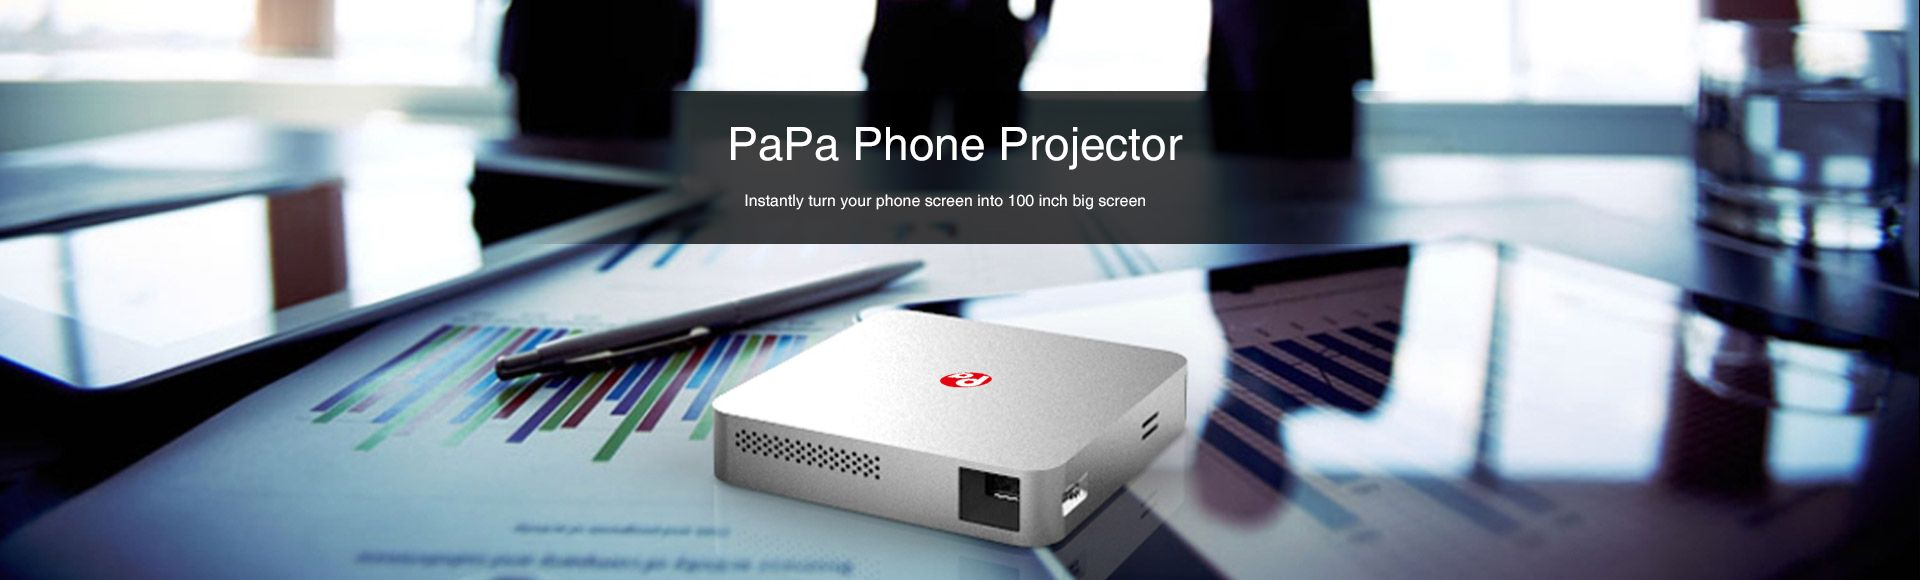 PaPa Phone Projector - Visible 1500 LM 854 x 480 Pixels 5GHz WiFi HDMI Home Theater Mini Cell Phone Projector